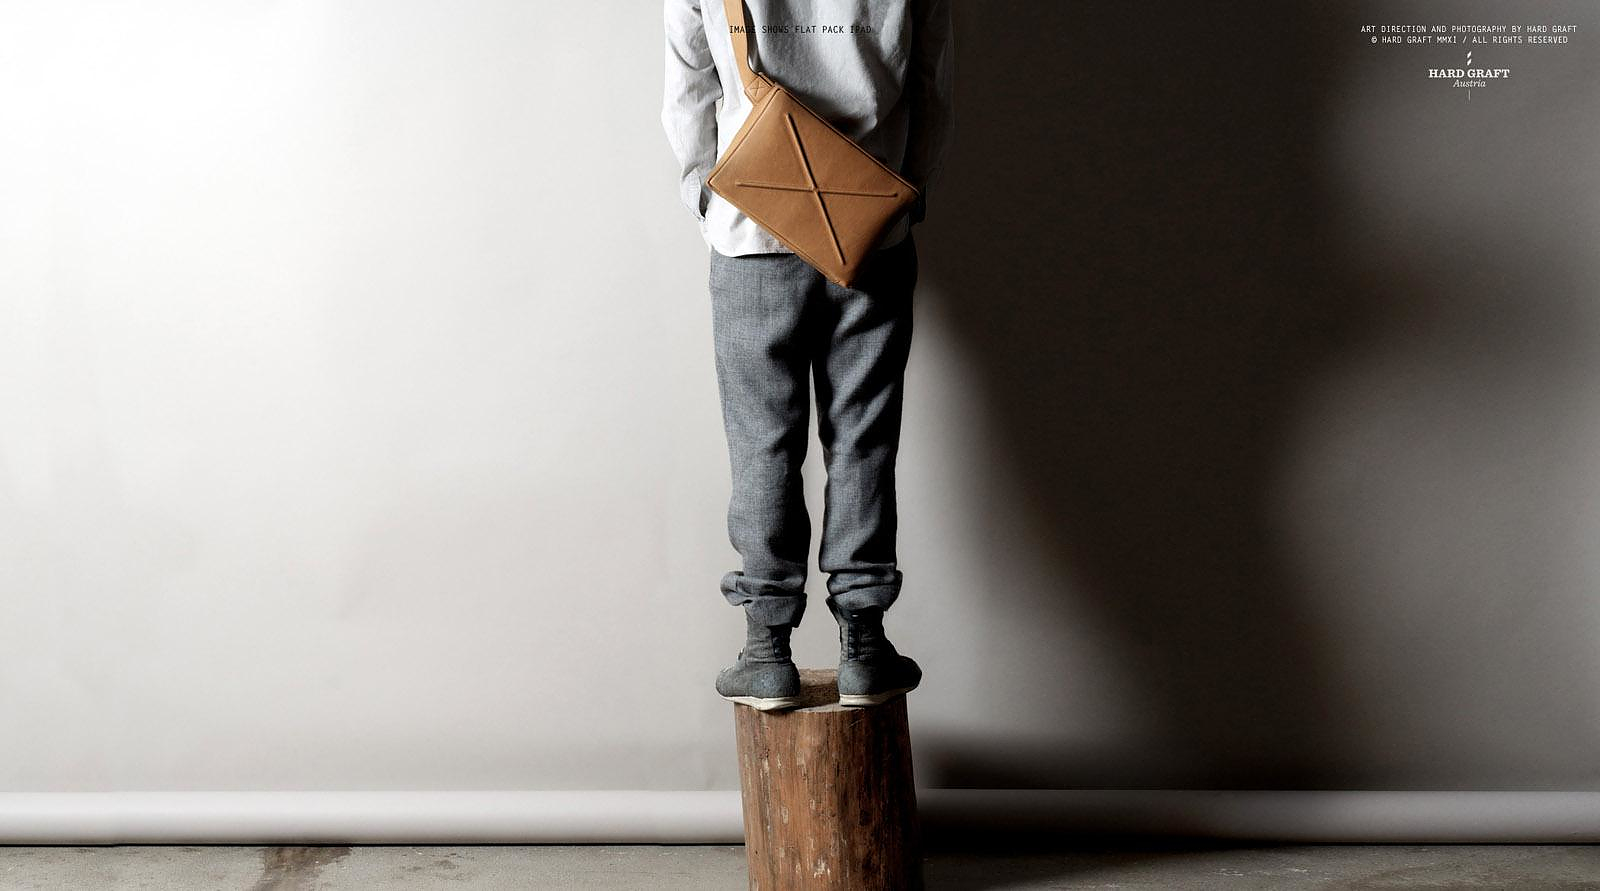 Flat Pack Leather Laptop Bag by Hard Graft.